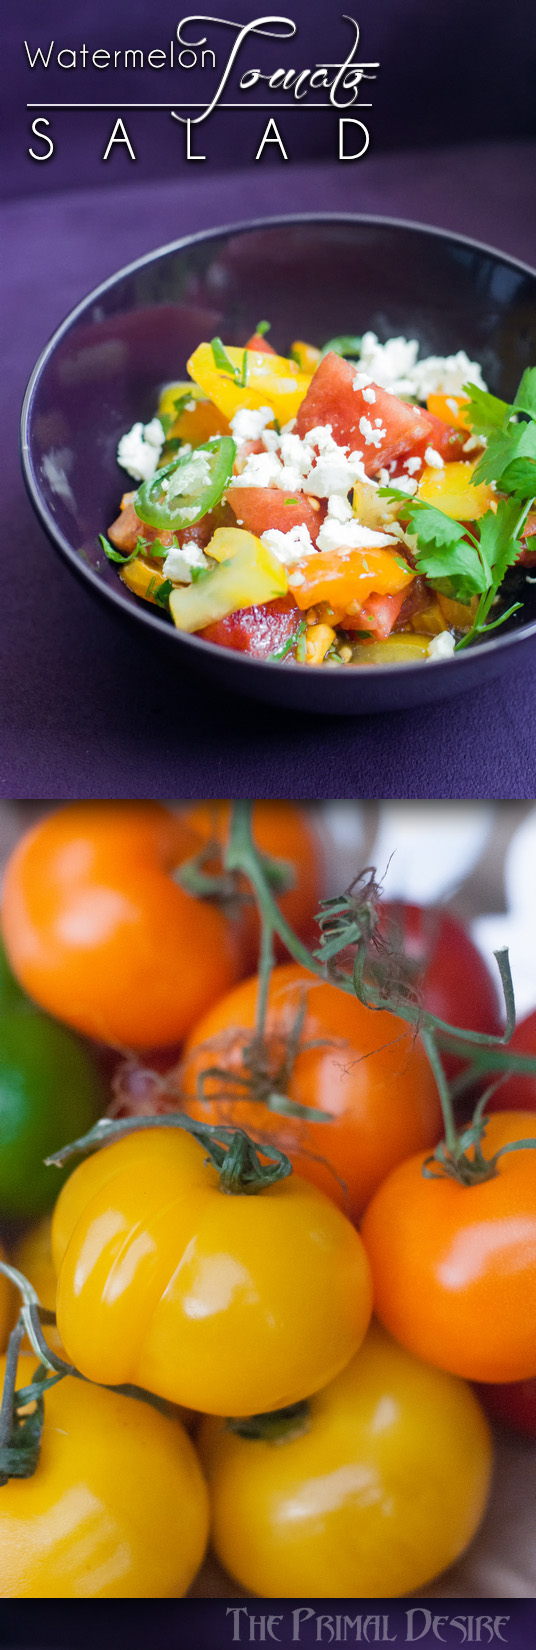 Watermelon Tomato Salad with Cilantro & Jalapeño is a surprisingly well balanced dish that is fresh and light, and perfect for summer! http://wp.me/p4Aygm-20p